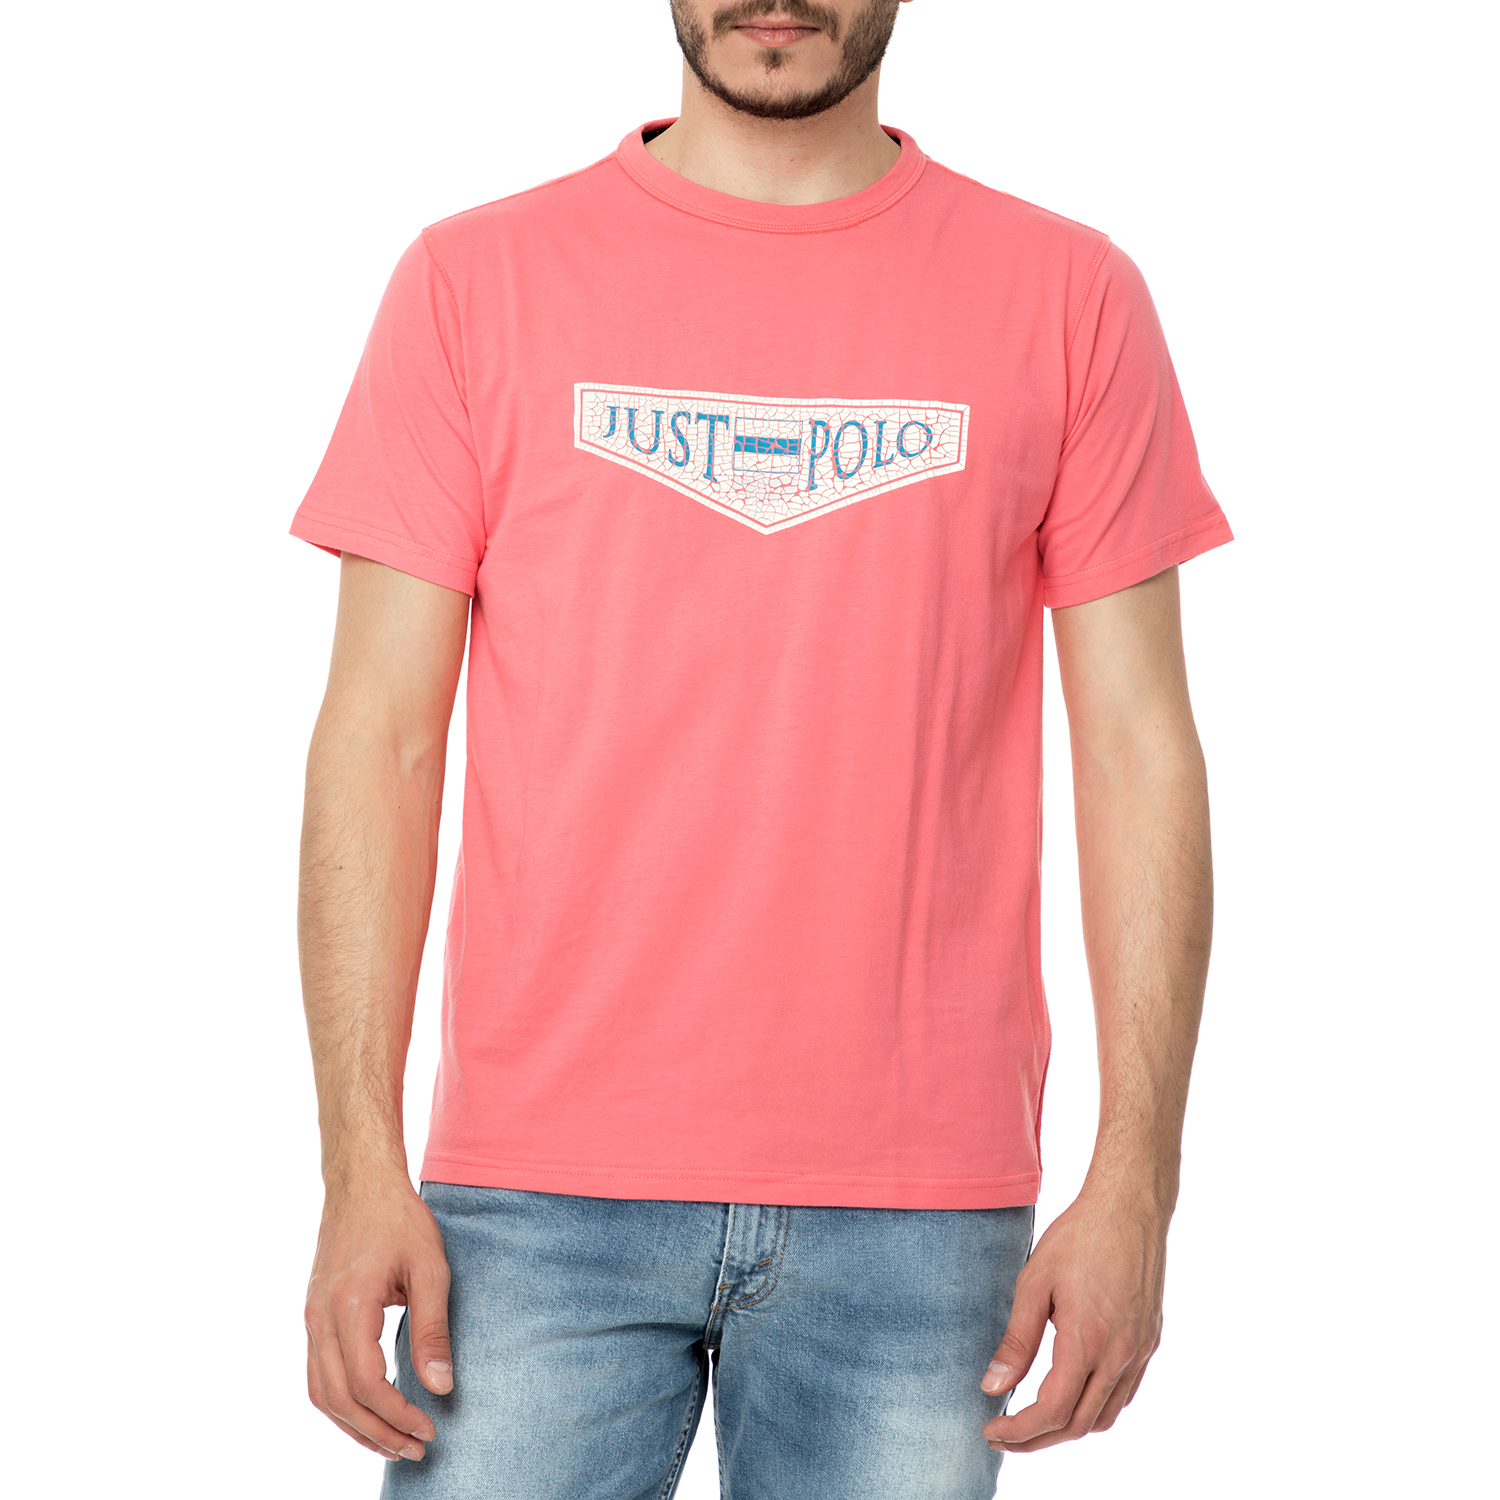 1507989d756f JUST POLO - Ανδρικό t-shirt TROPHY LOGO JUST POLO ροζ